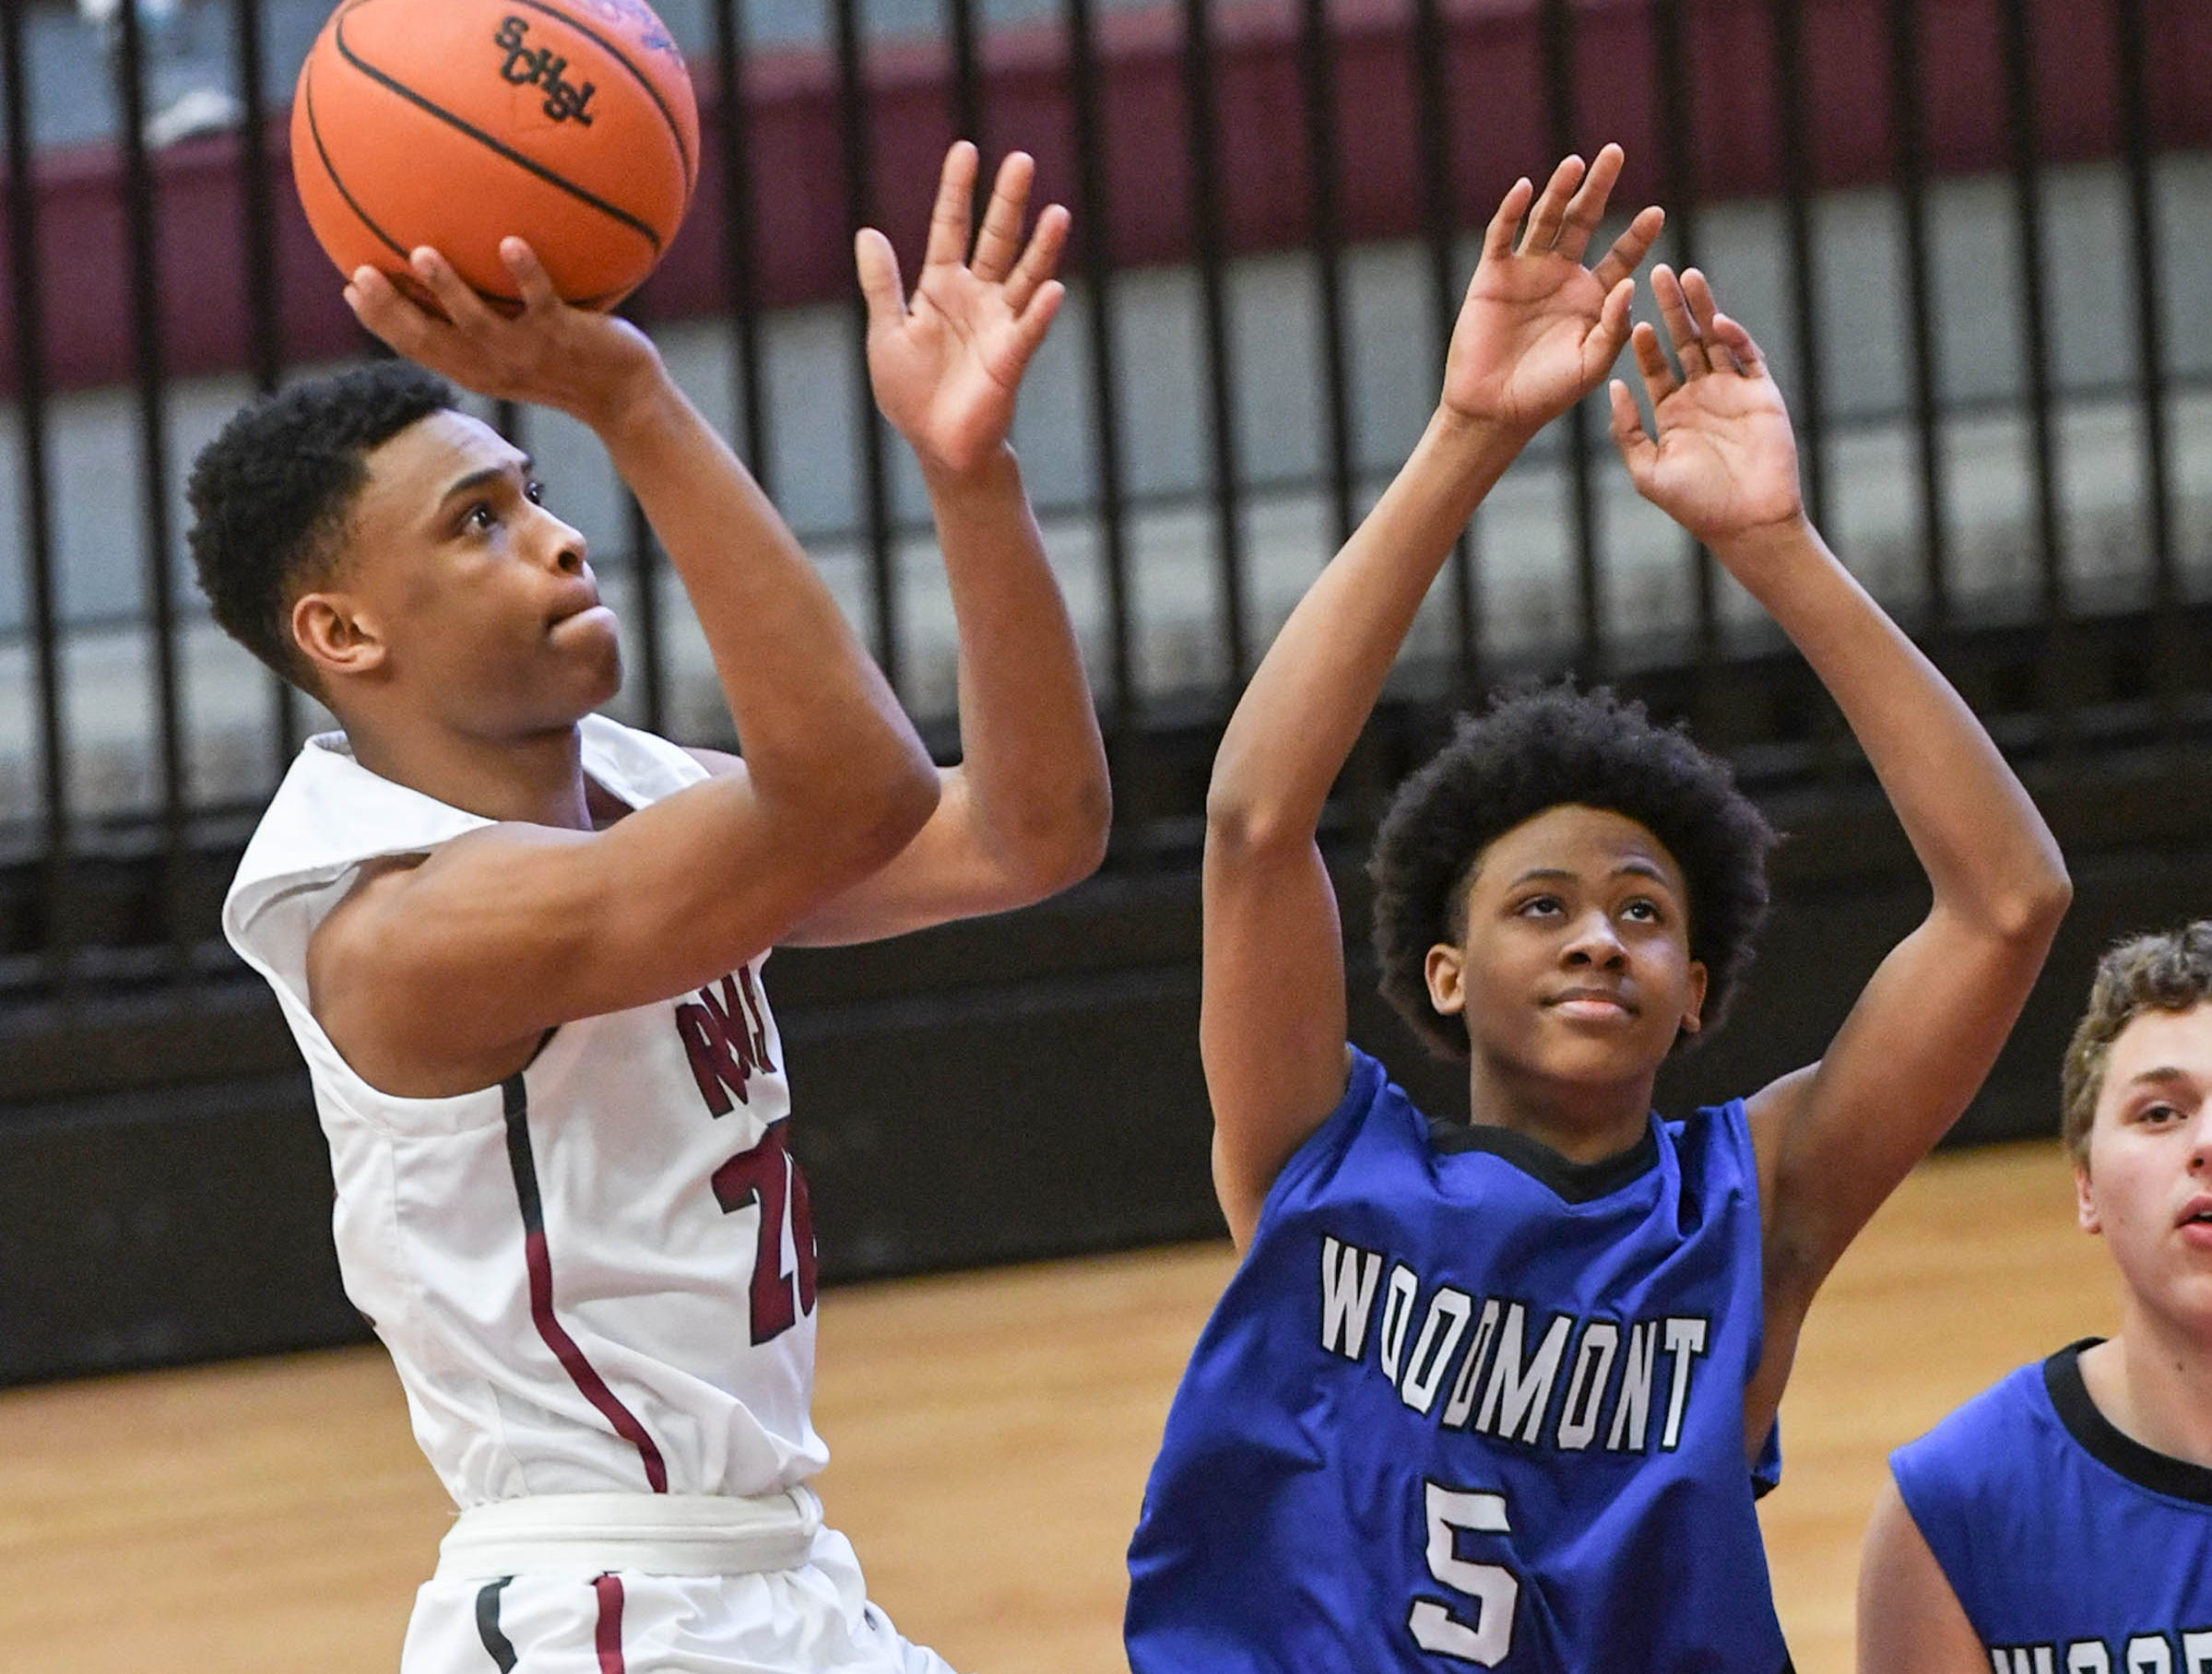 Westside senior Trystan Rice(20) shoots near Woodmont junior Pedrick Williams(5) during the fourth quarter at Westside High School in Anderson on Tuesday. Westside beat Woodmont 85-57.